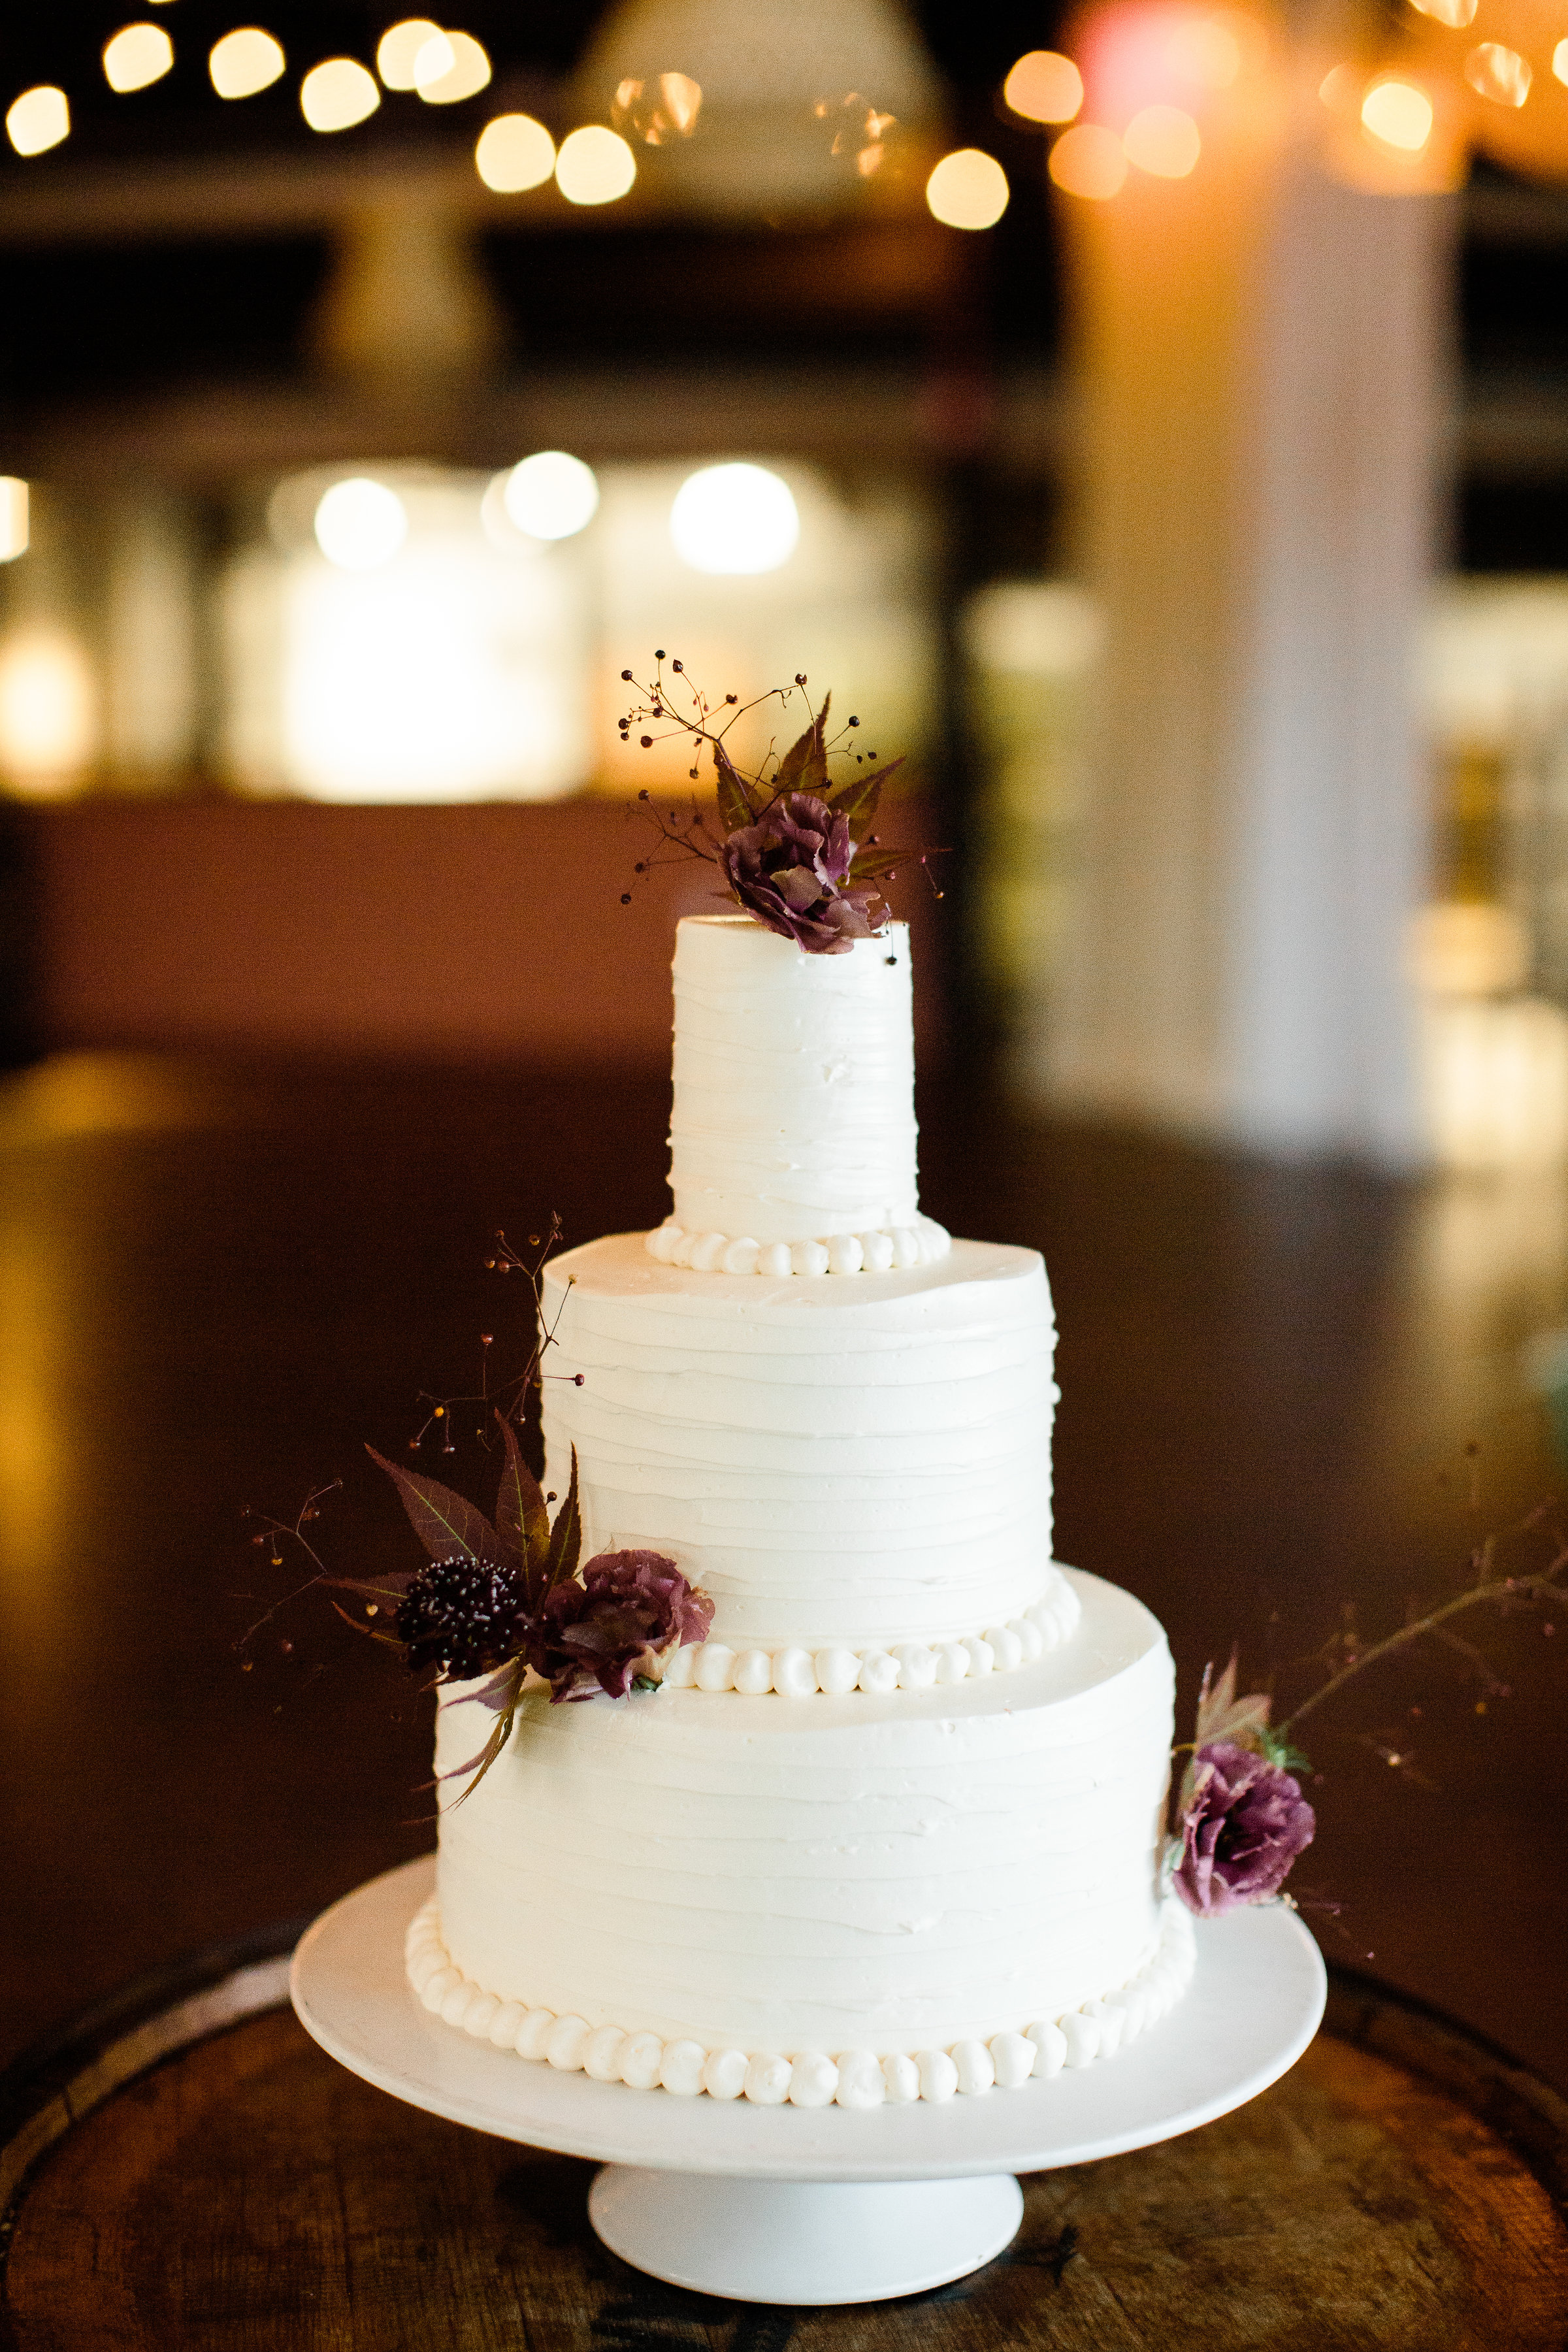 Three tiered (top tier small) white cake from LaCuisine - Pearl Weddings & Events